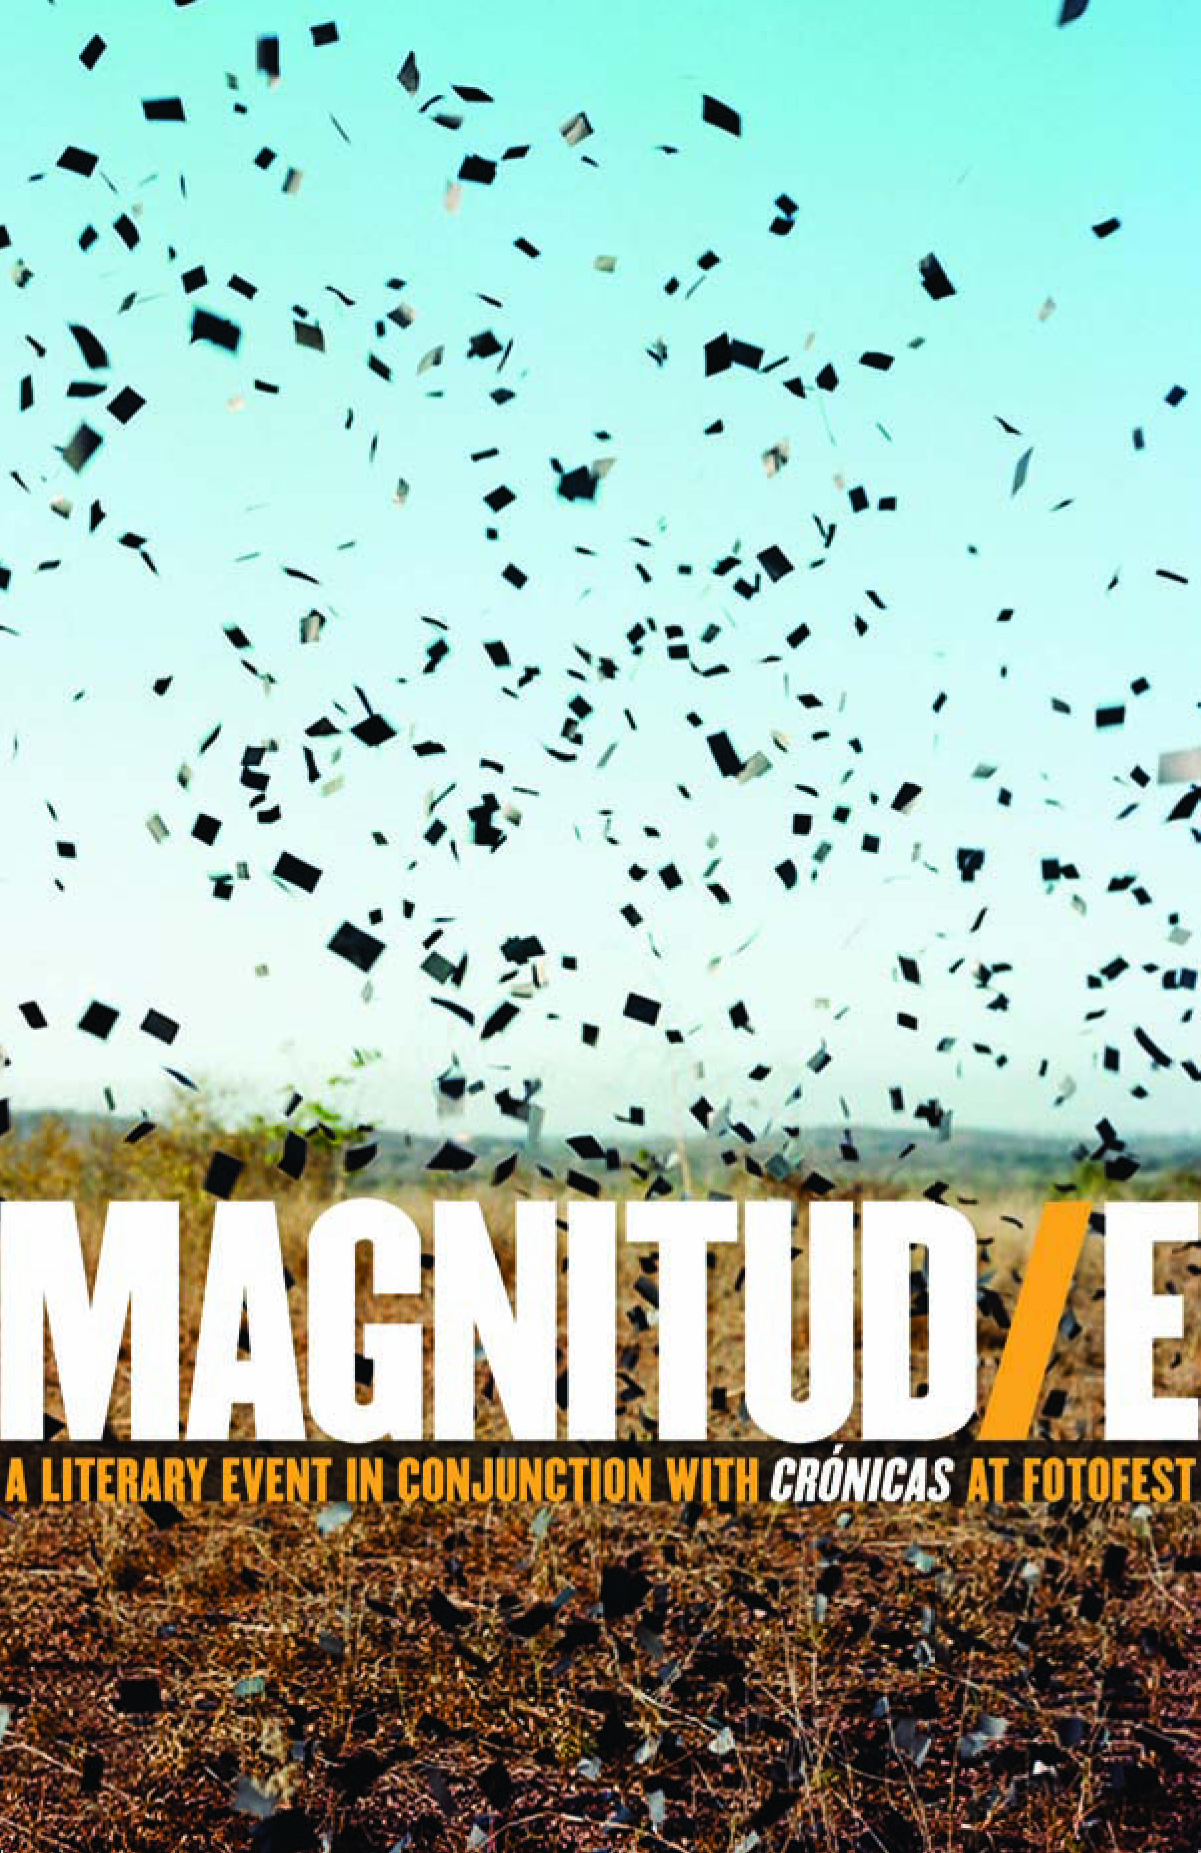 Magnitud/e flyer designed by Make.Play.Speak